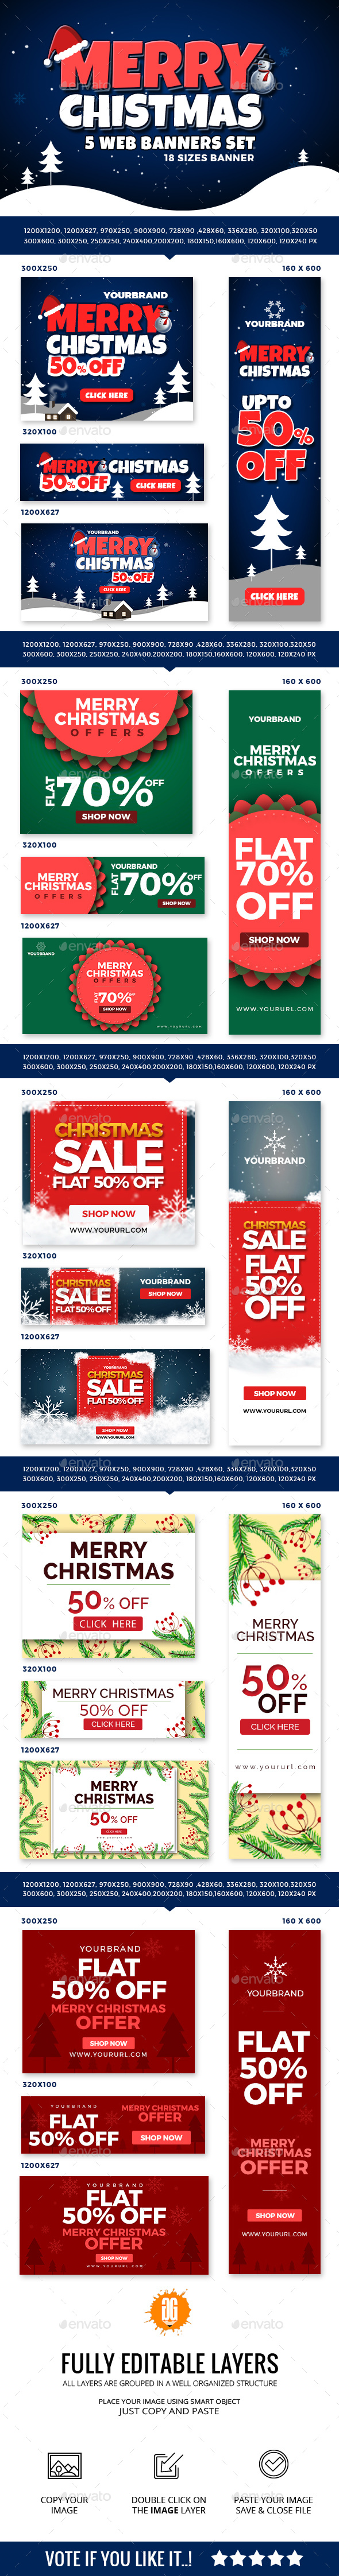 90 Christmas Web Banners - Banners & Ads Web Elements